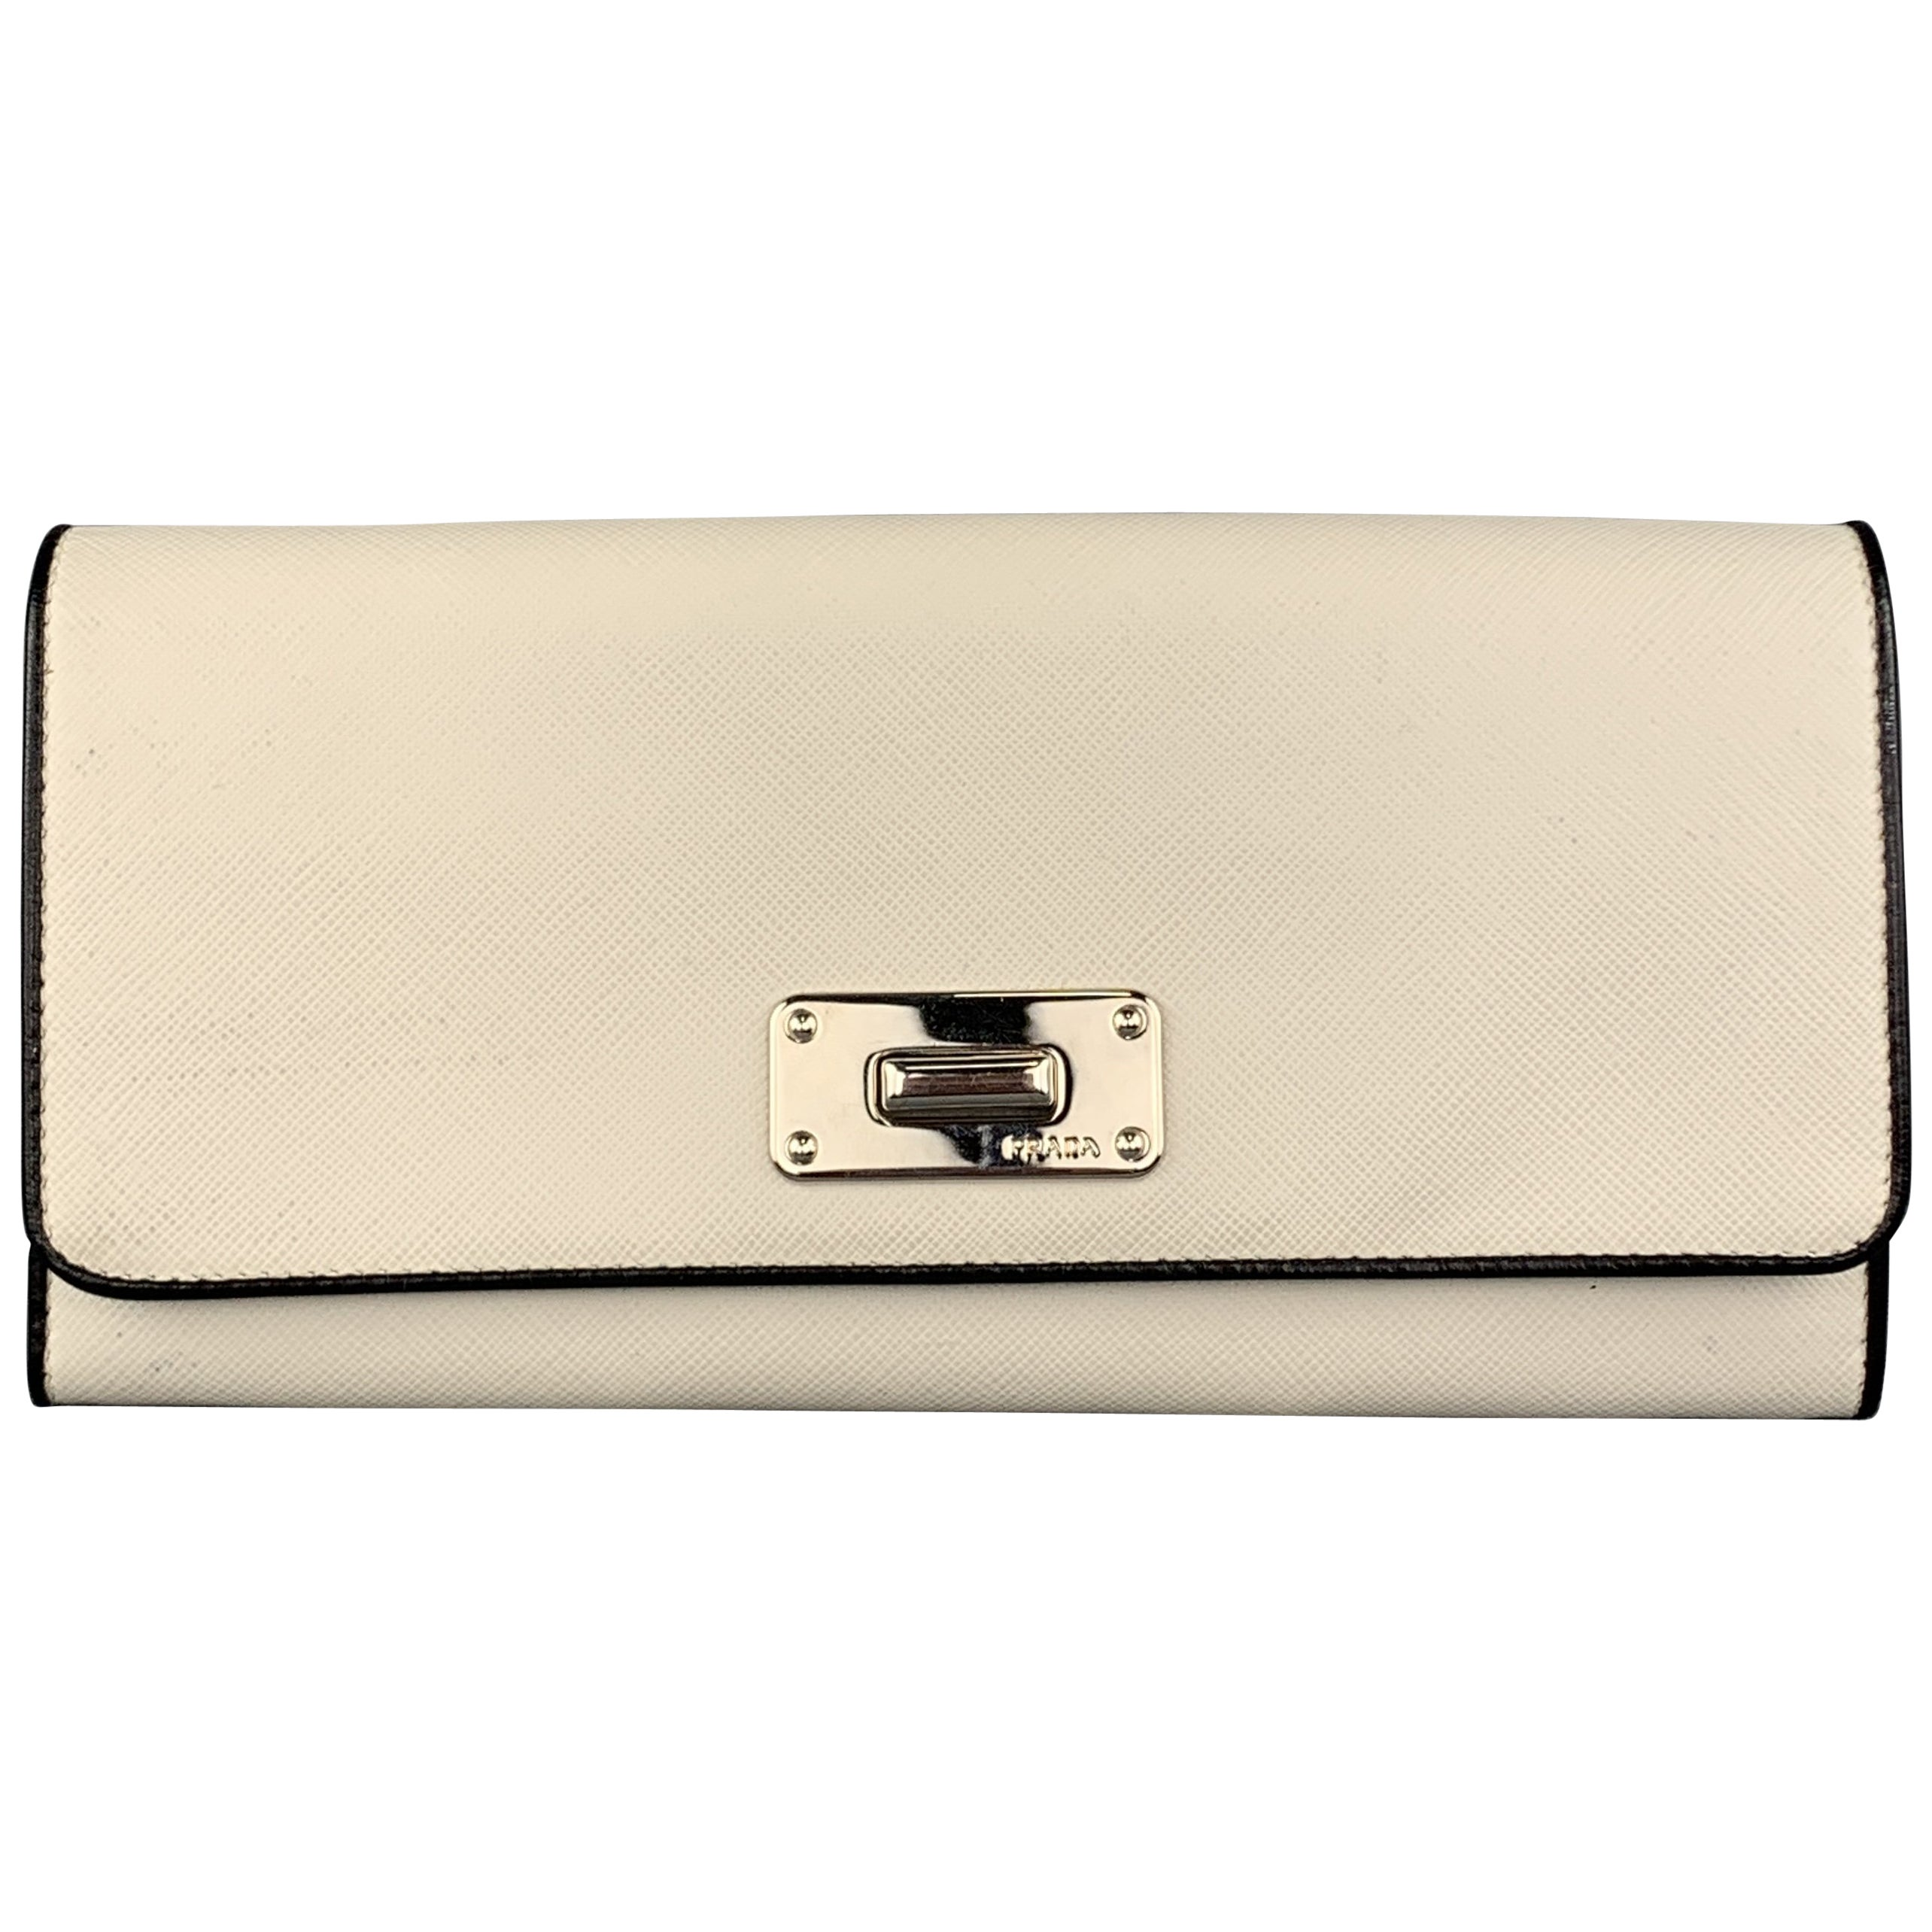 e204c61b703d4b PRADA Off White Saffiano Leather Black Piping Silver Closure Wallet at  1stdibs